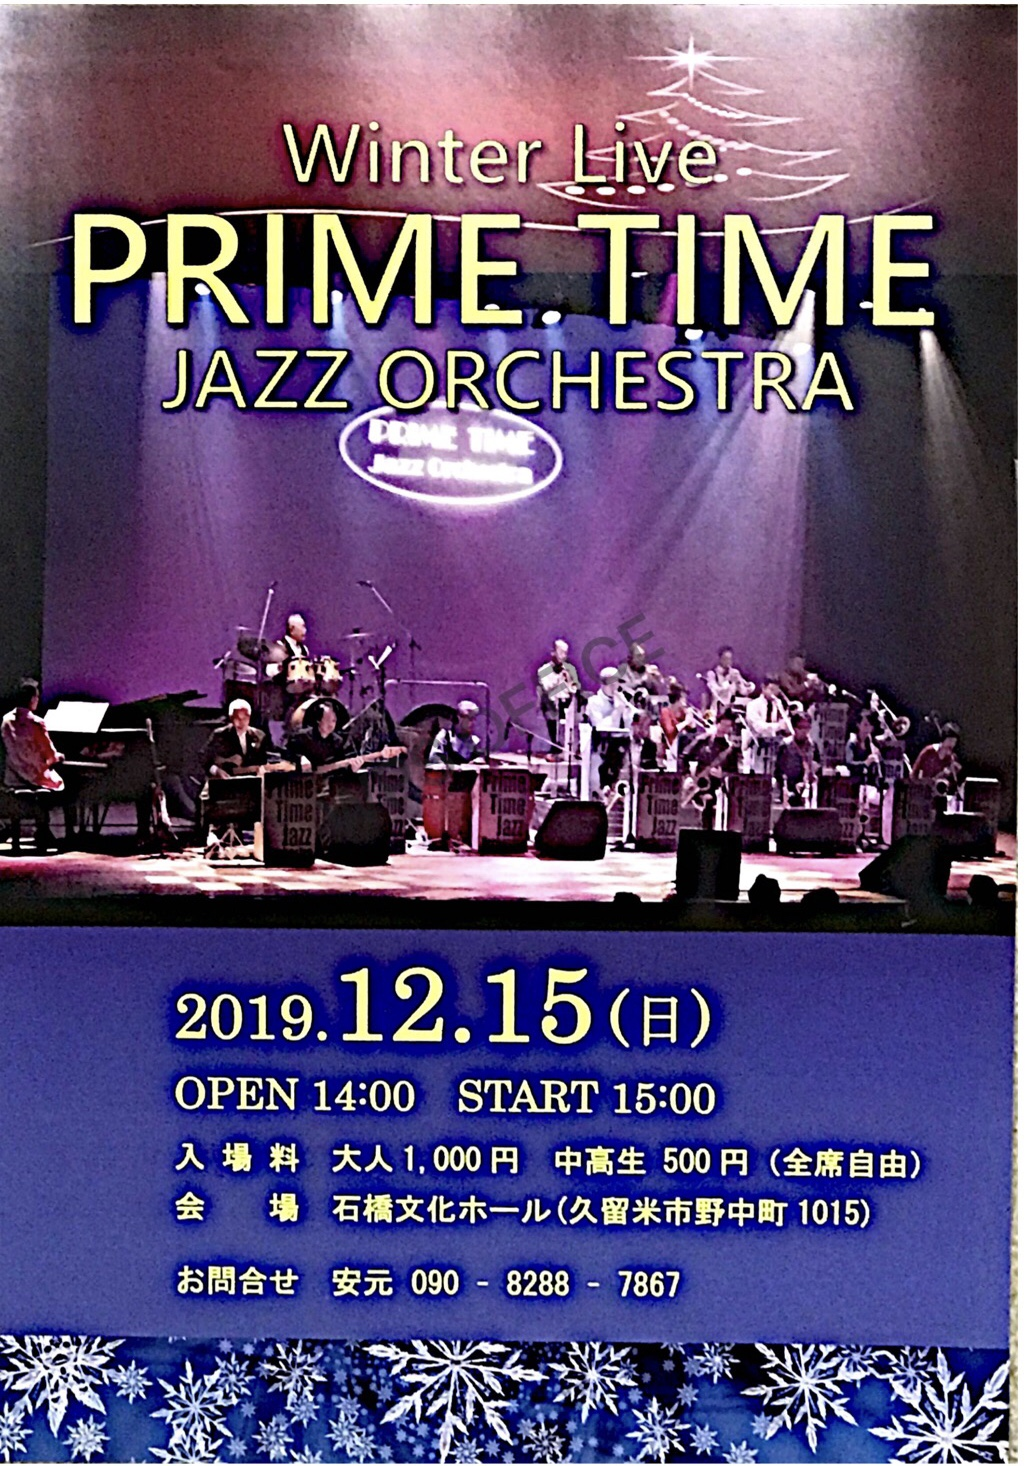 「prime Time Jazz Orchestra」